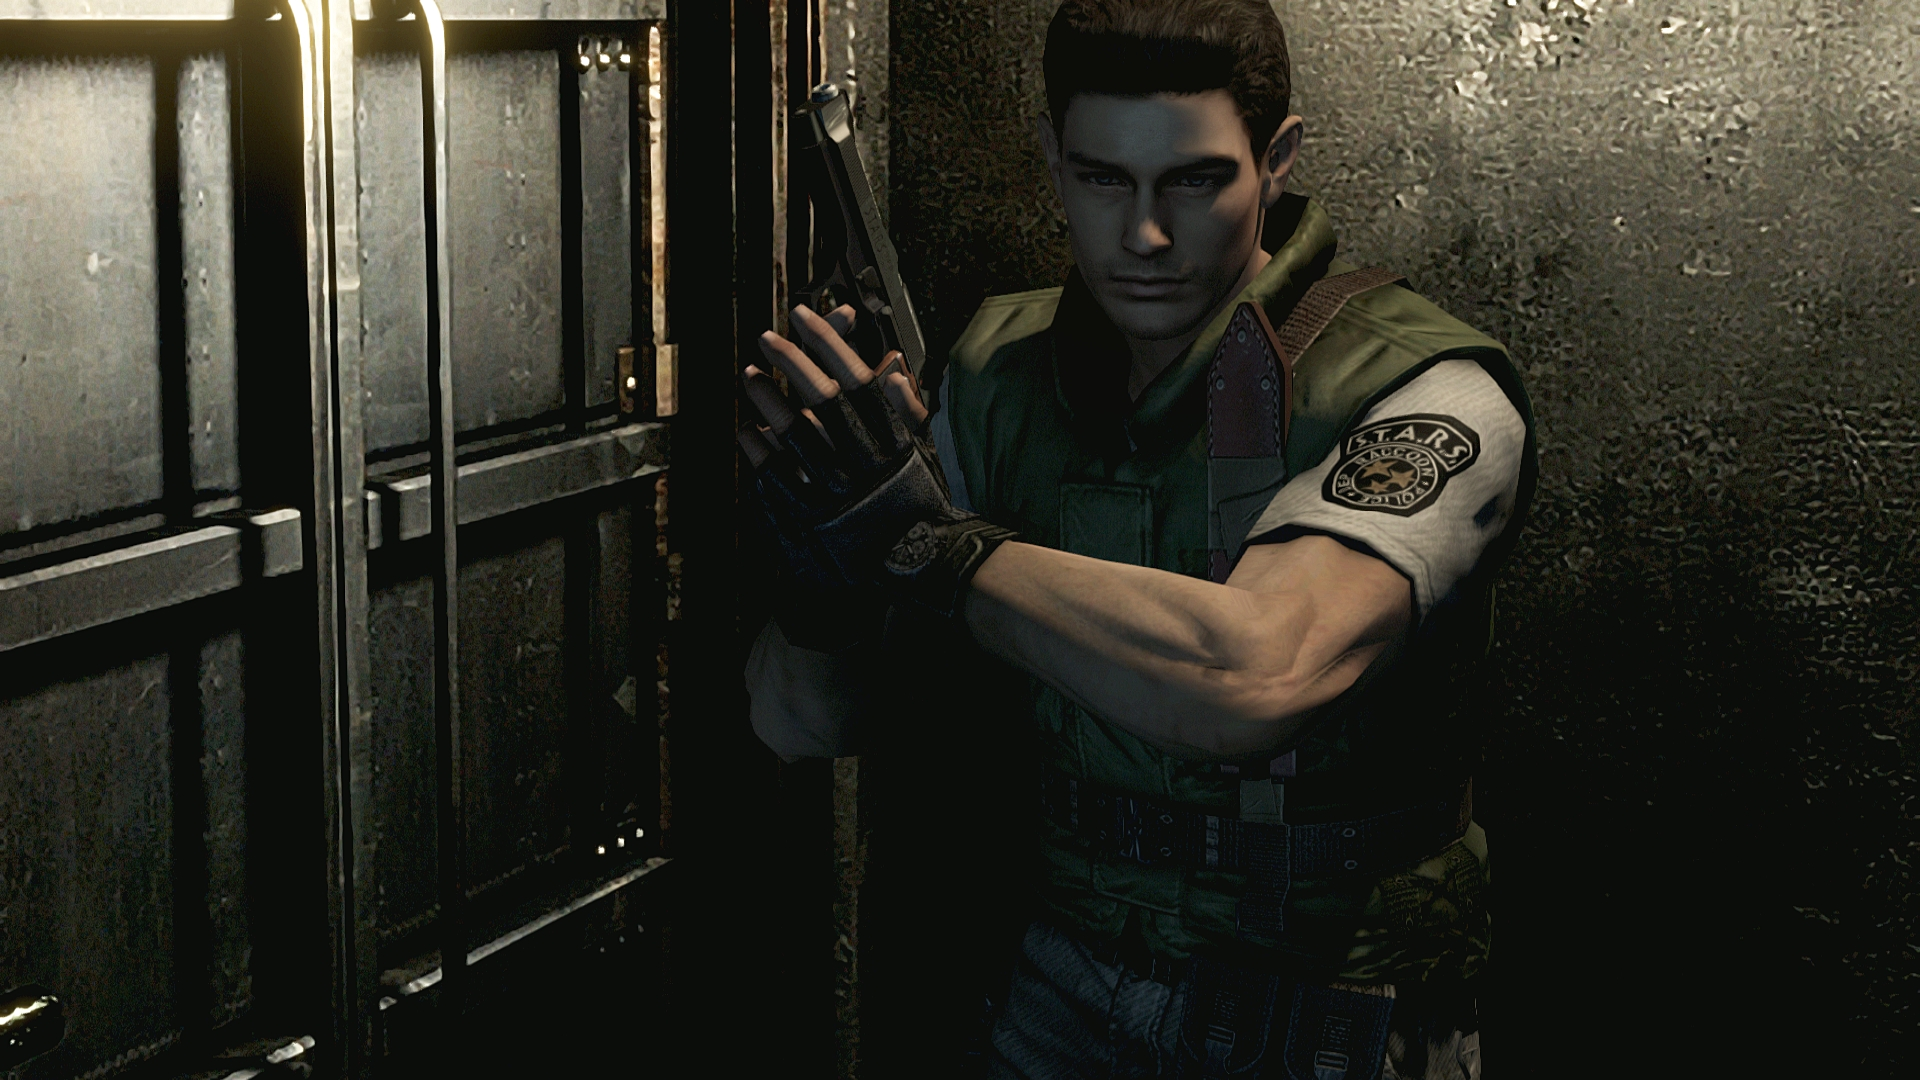 Remake of Resident Evil remake 'wouldn't be laughable', says